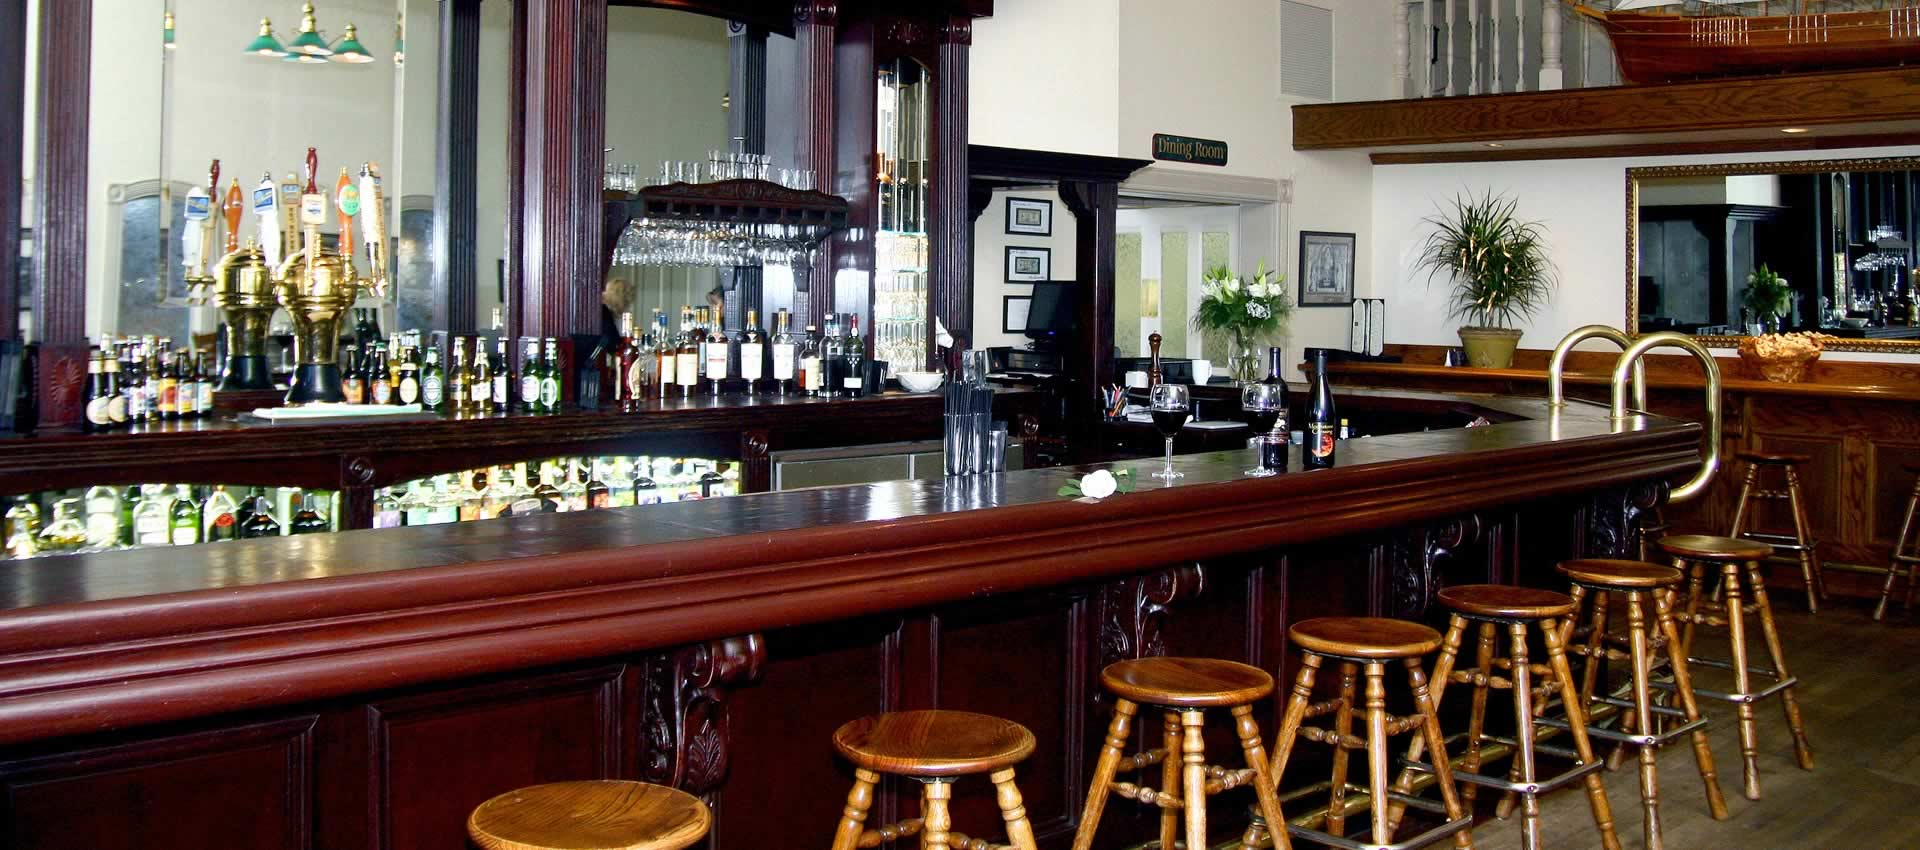 redwood suites - Victorian Inn bar